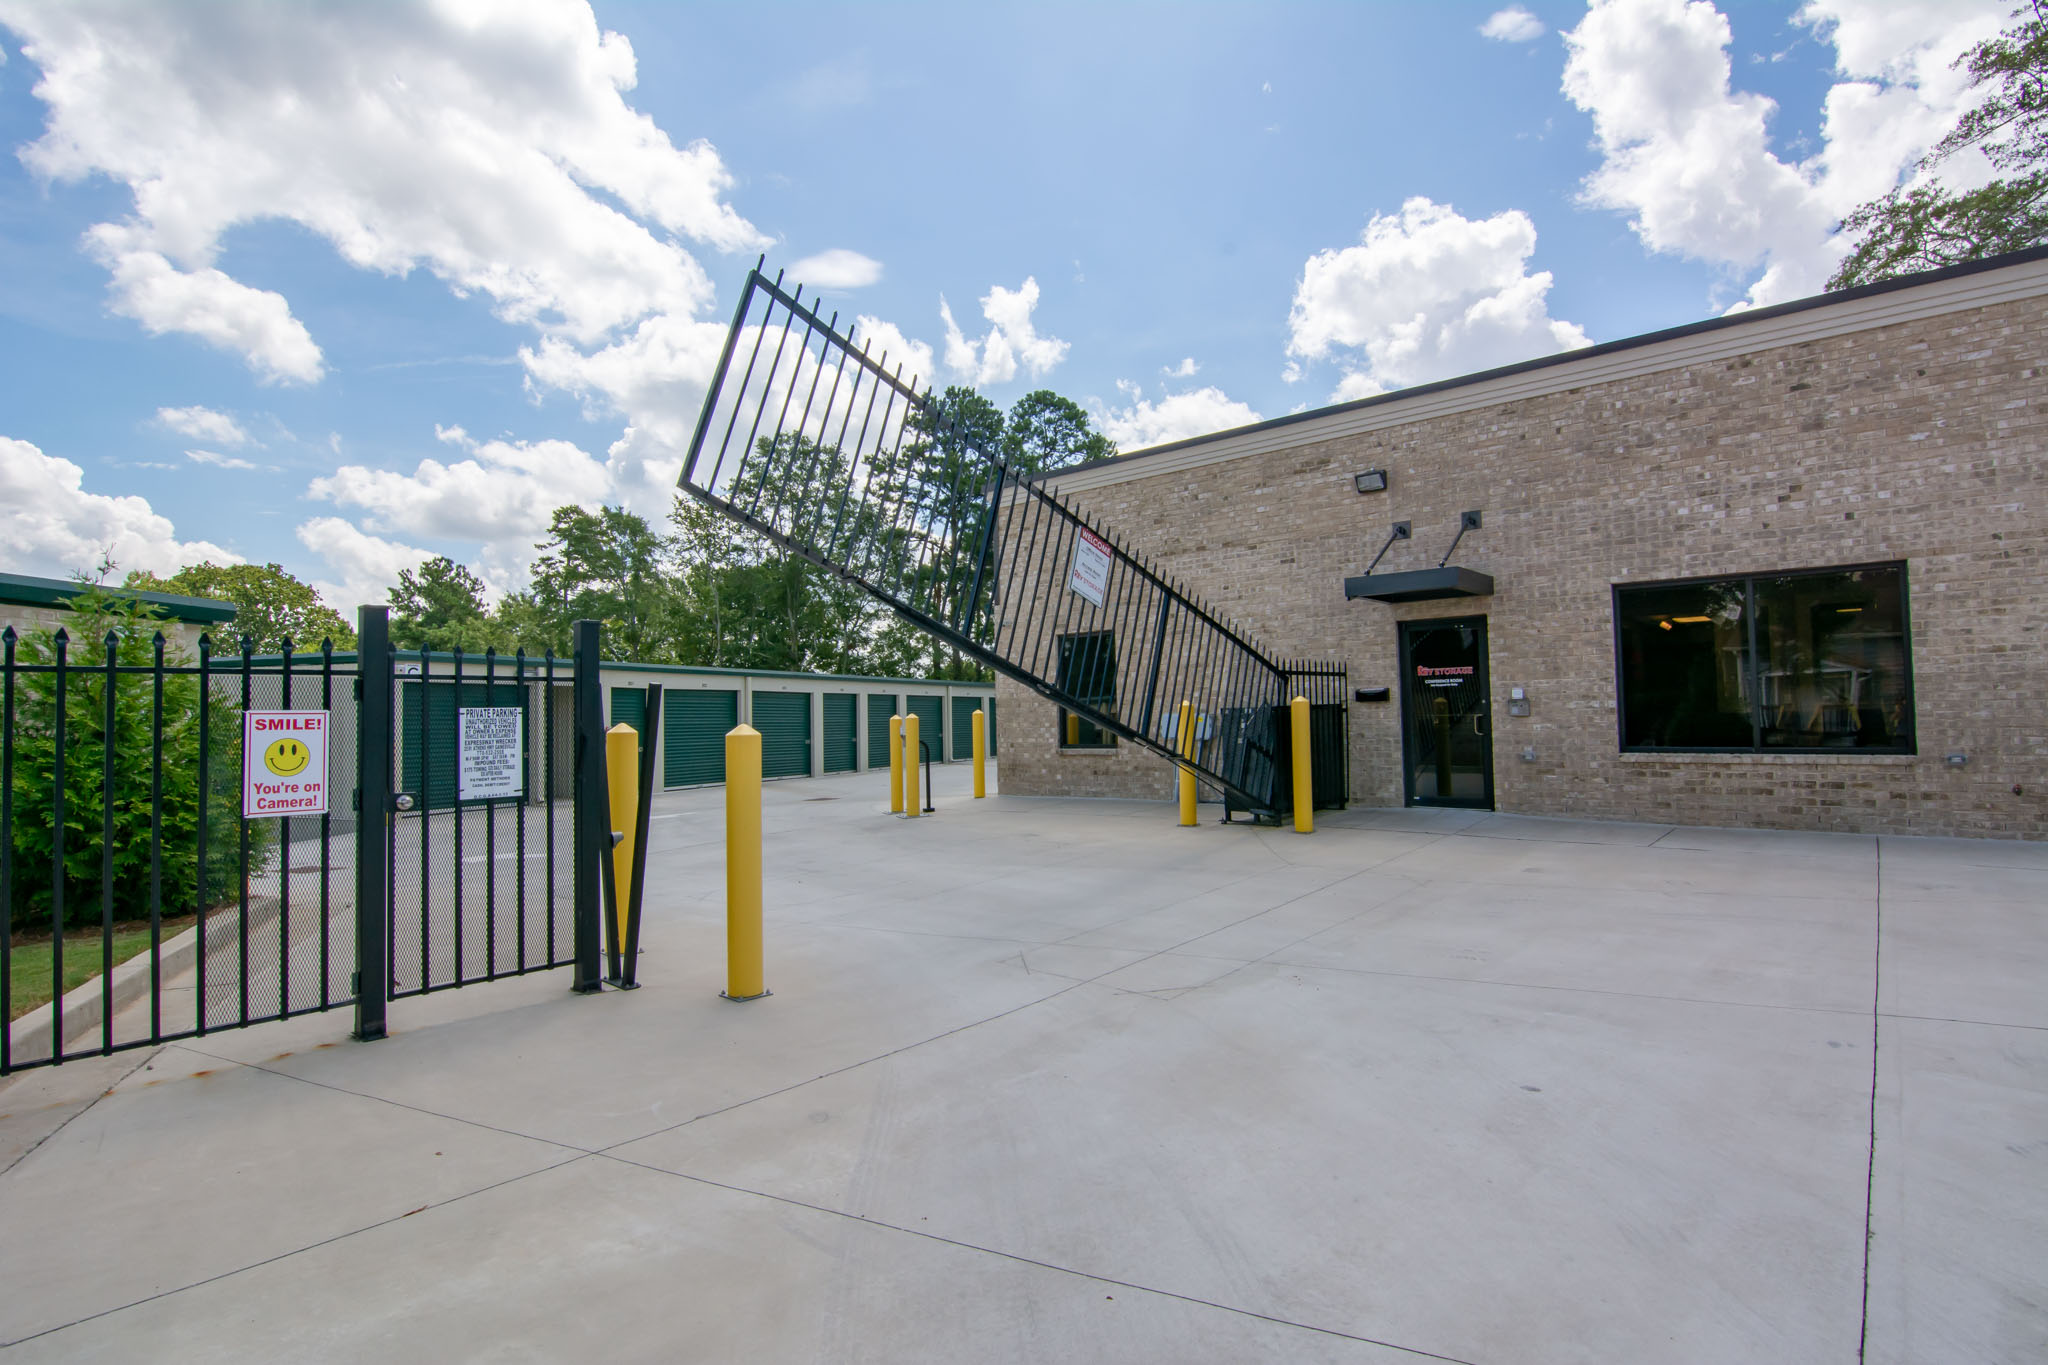 View of Key Storage gate in operation